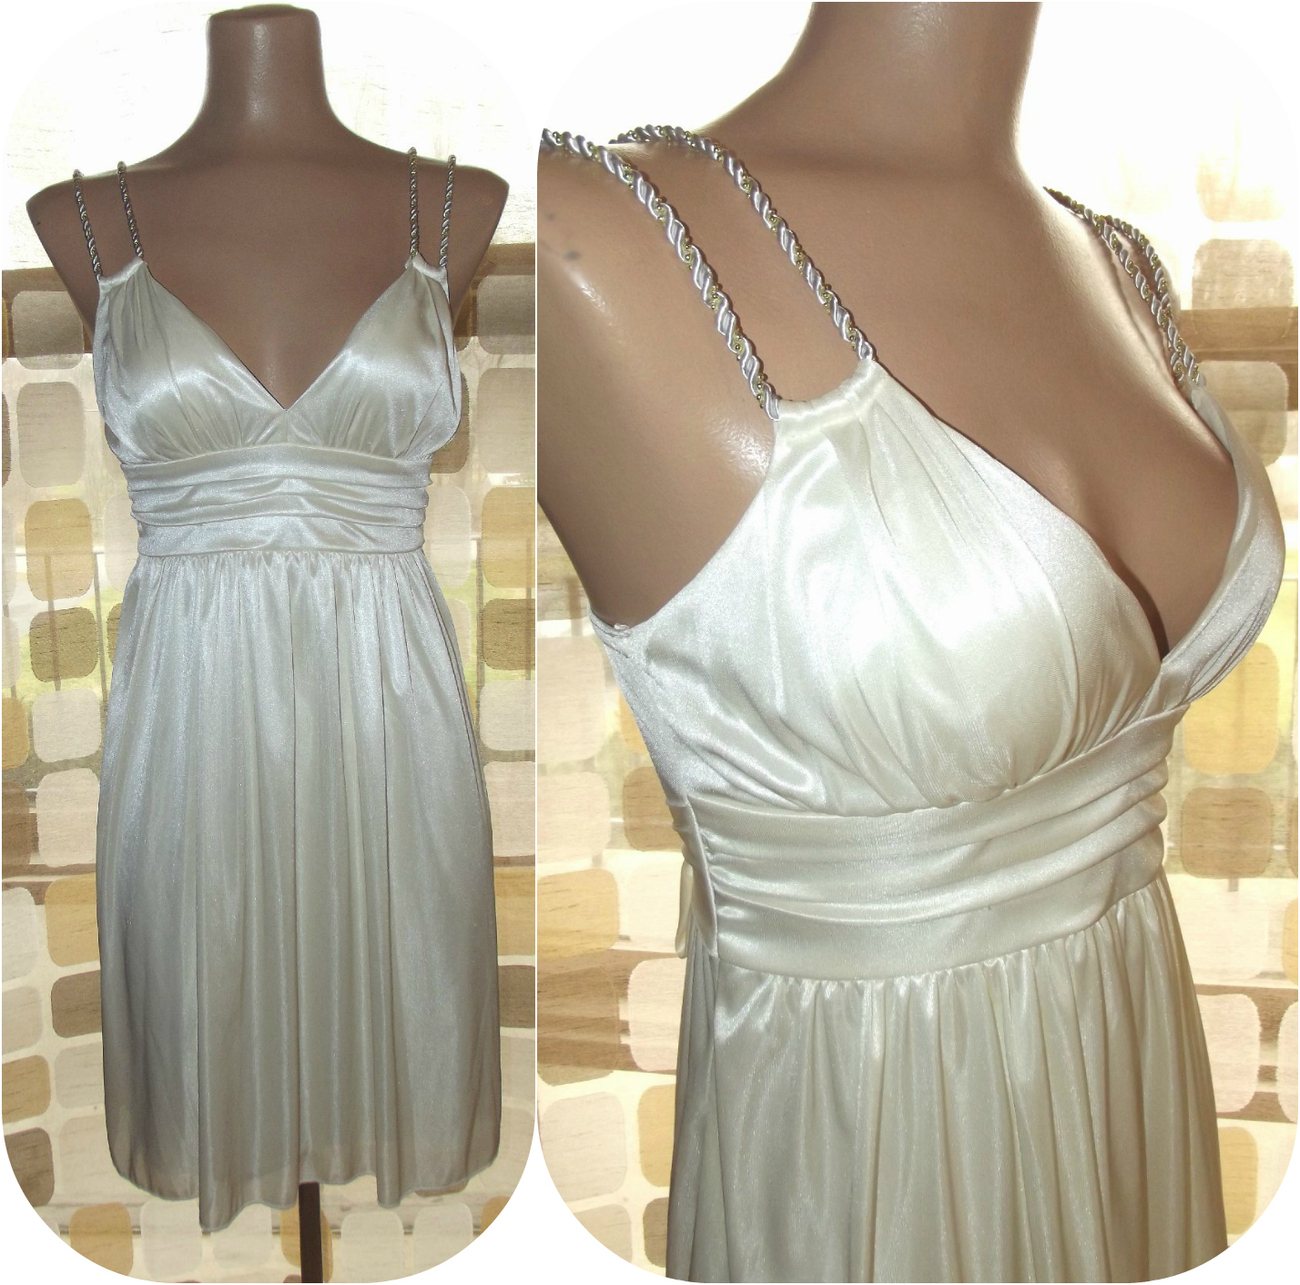 Vintage 70s style grecian inspired mini draped party dress cocktail